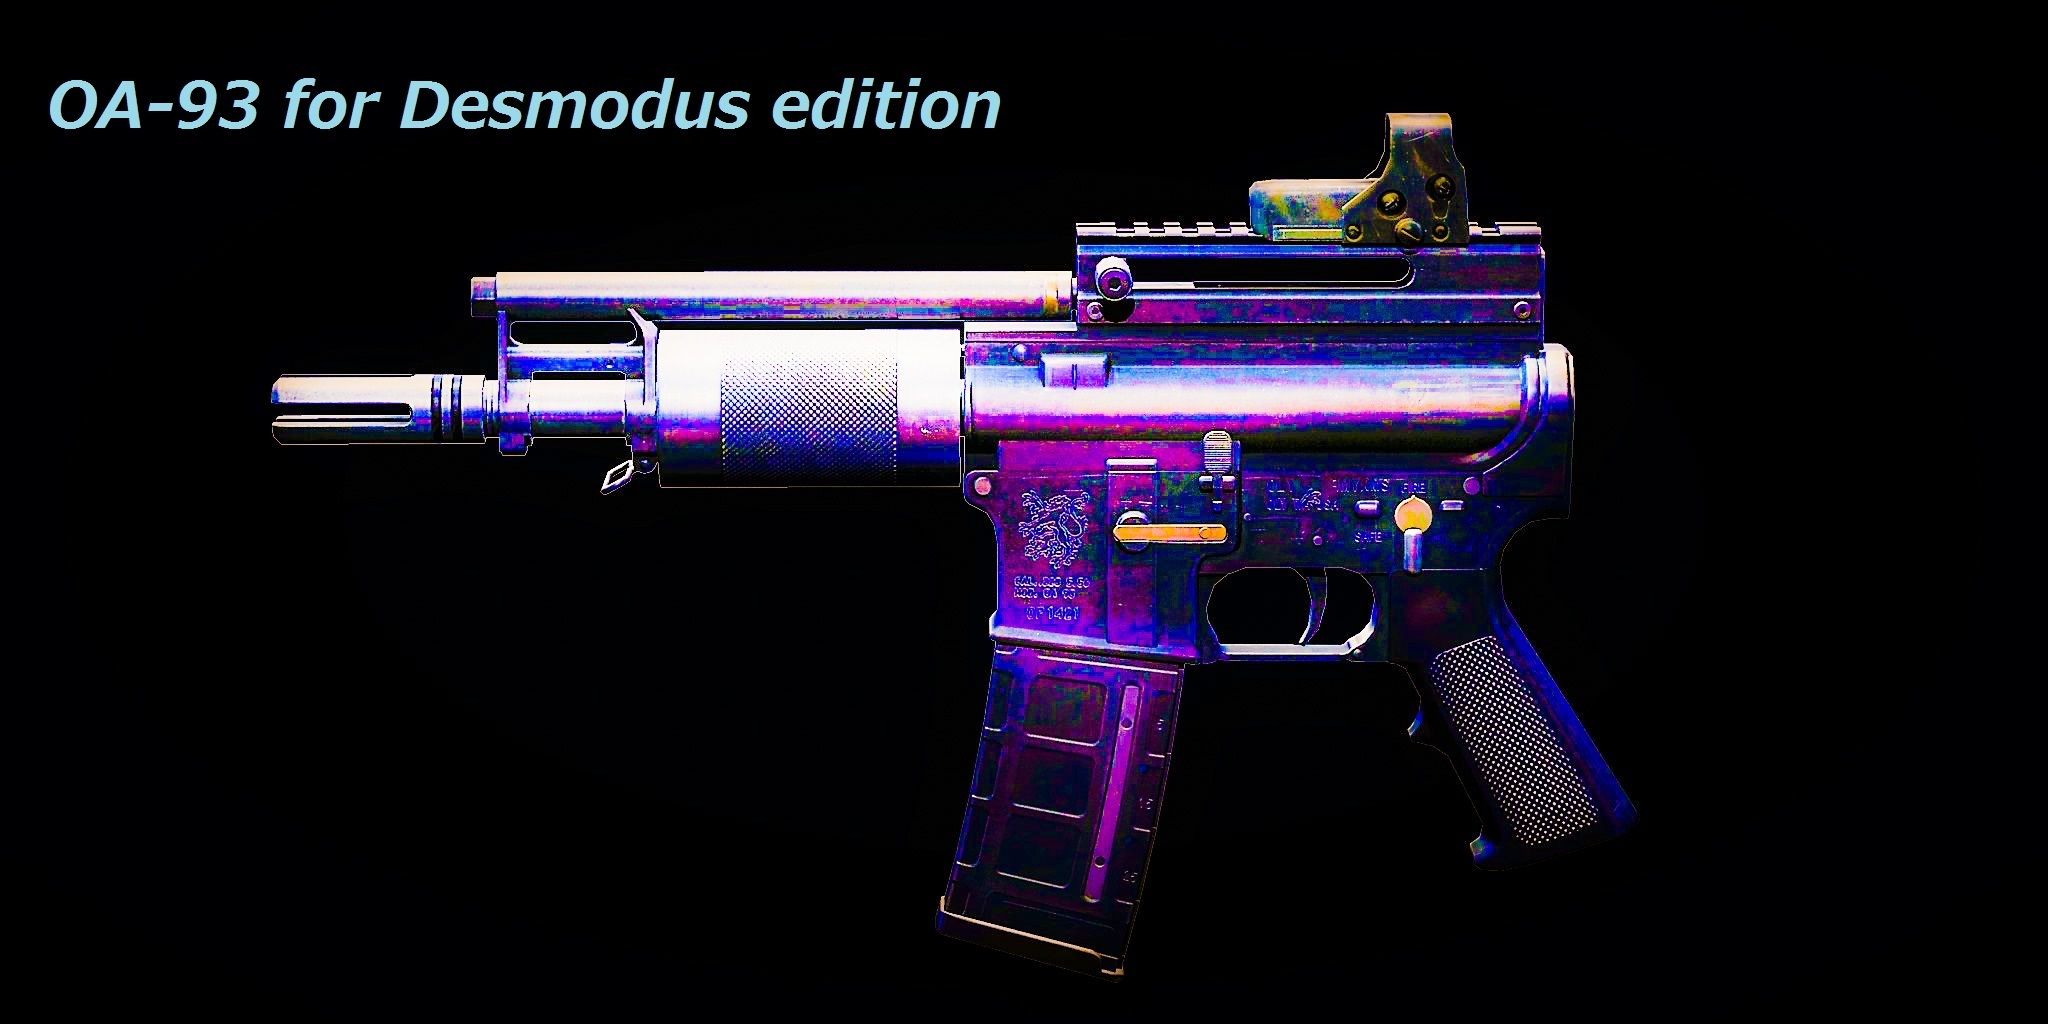 「OA-93 for Desmodus edition」(仮)